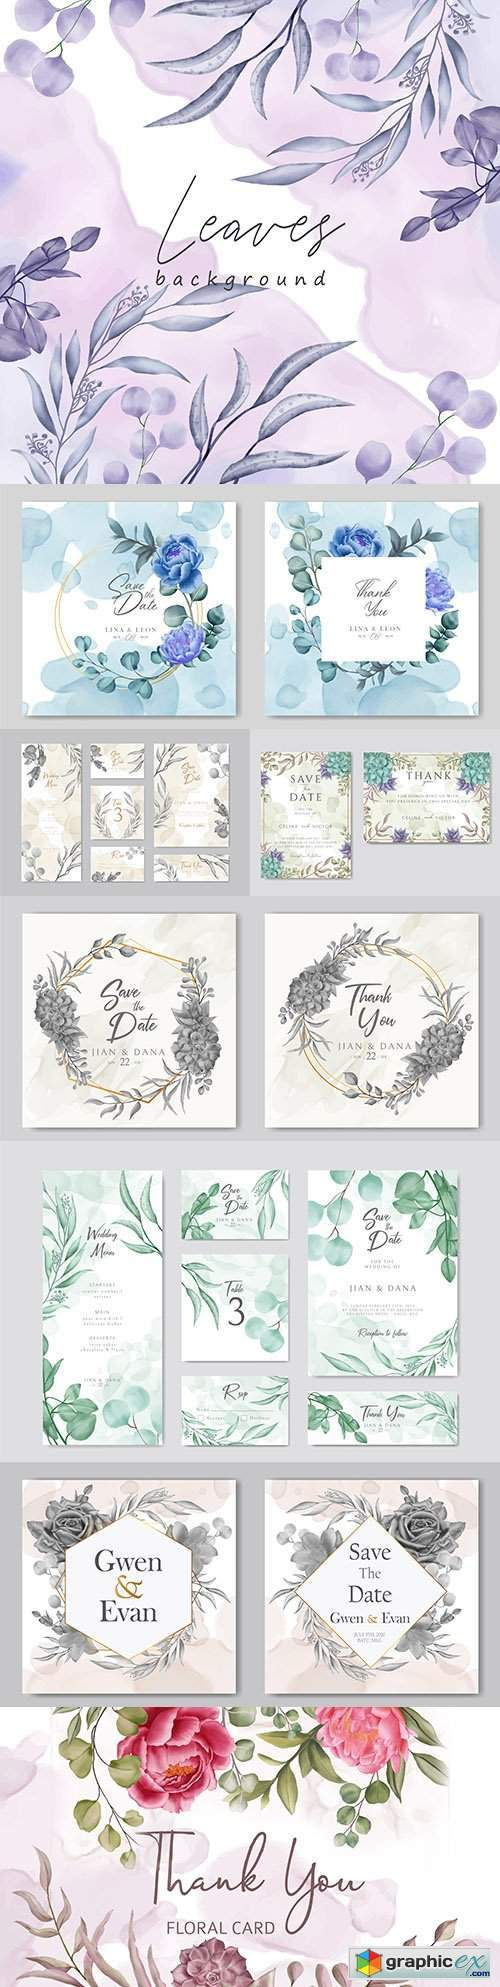 Elegant watercolour floral wedding invitations with golden frame